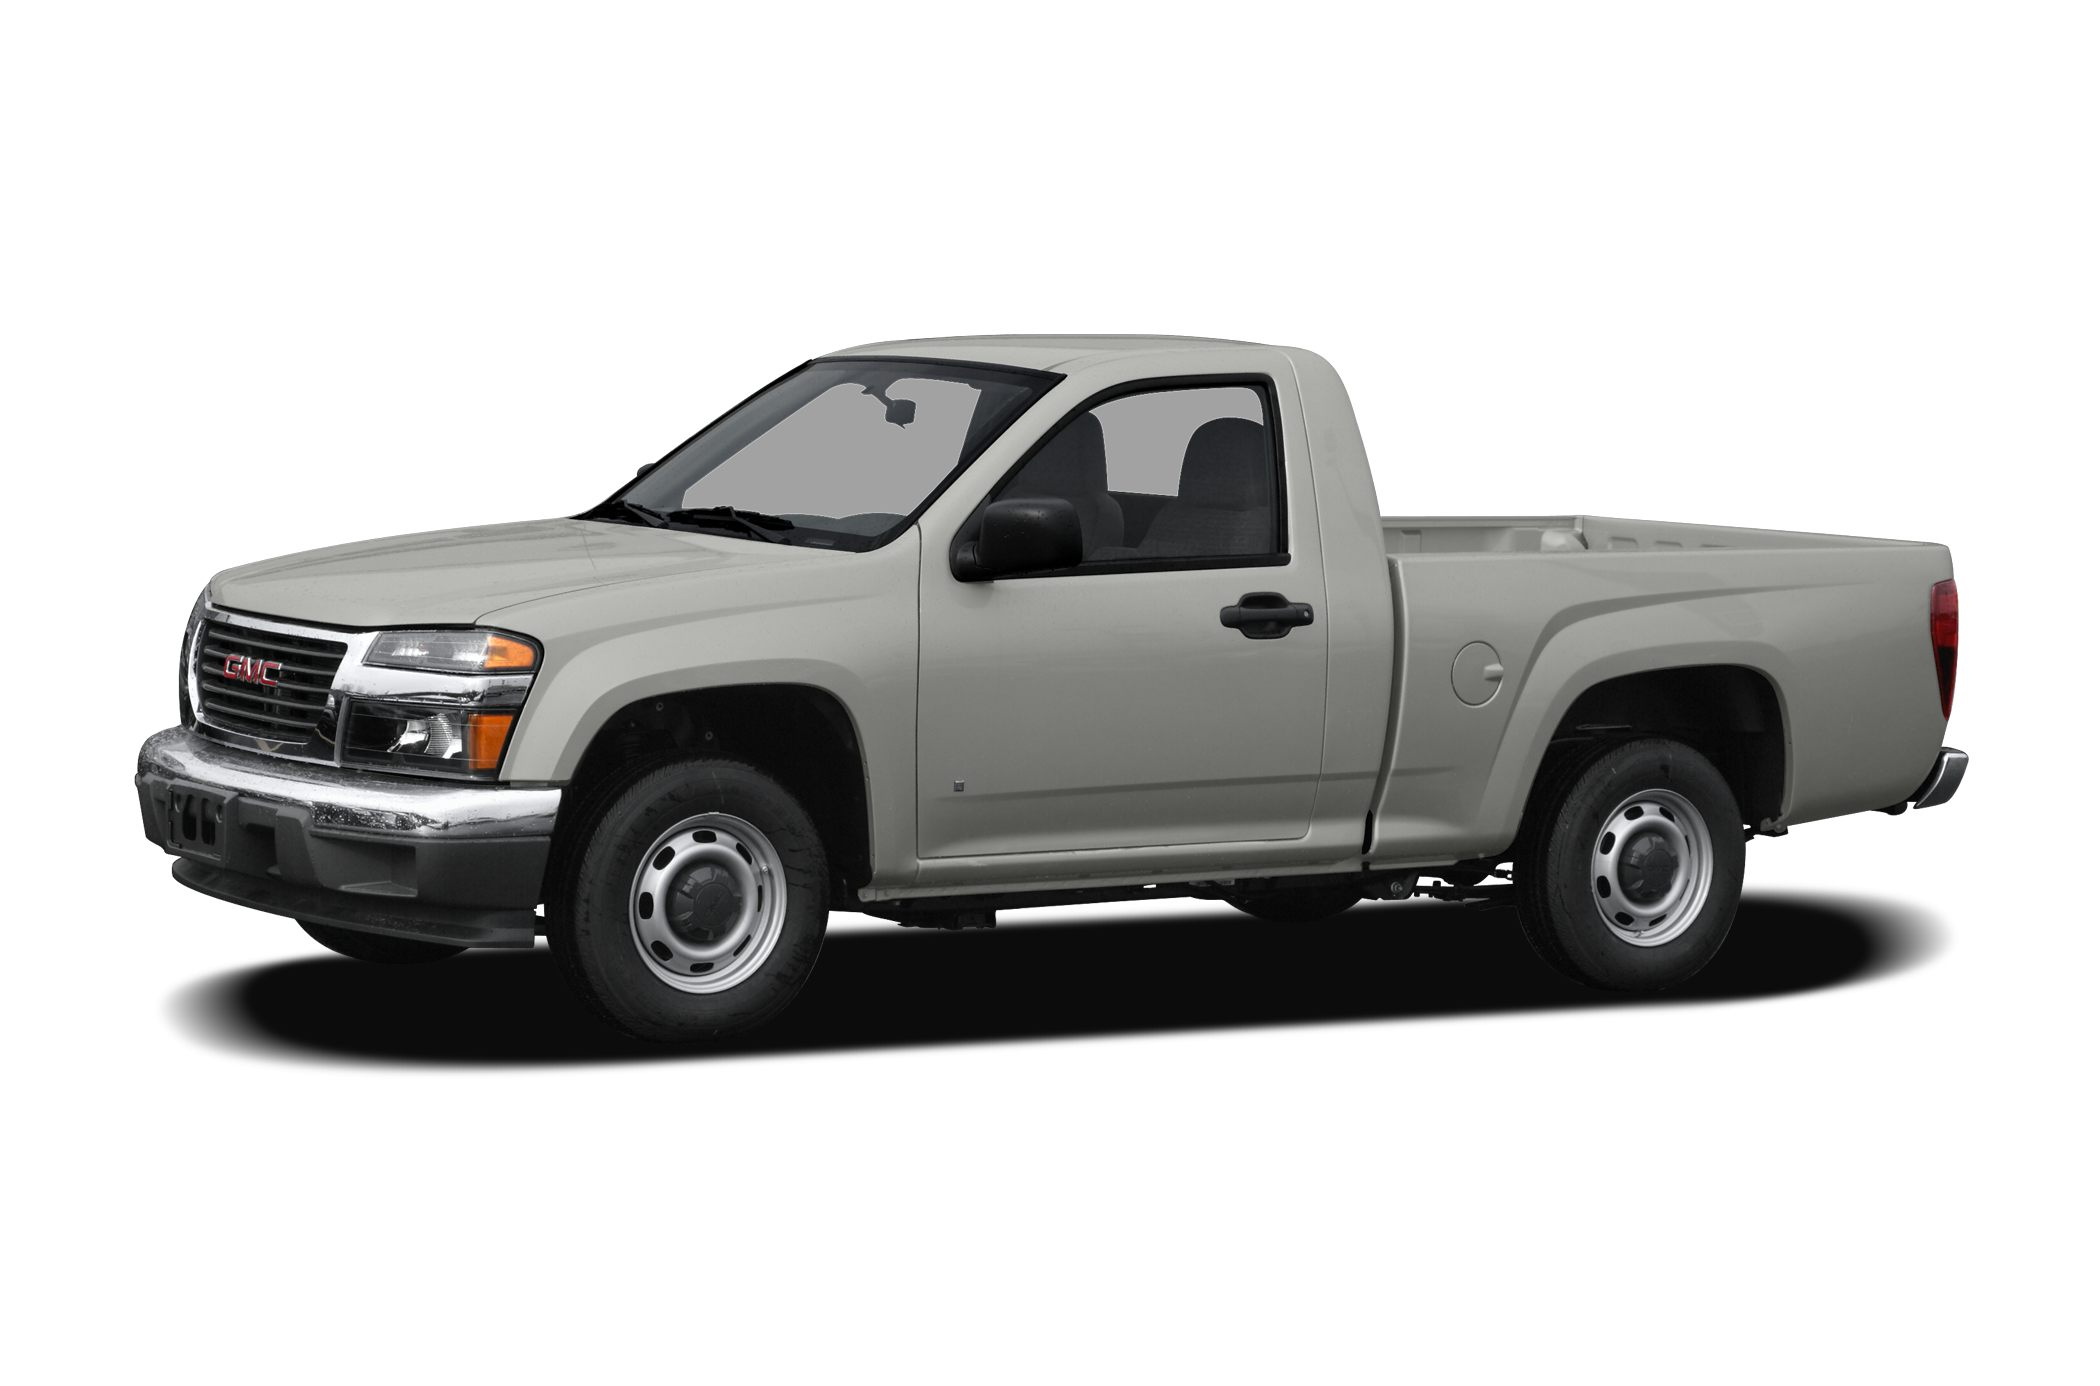 2008 Gmc Canyon Pricing And Specs